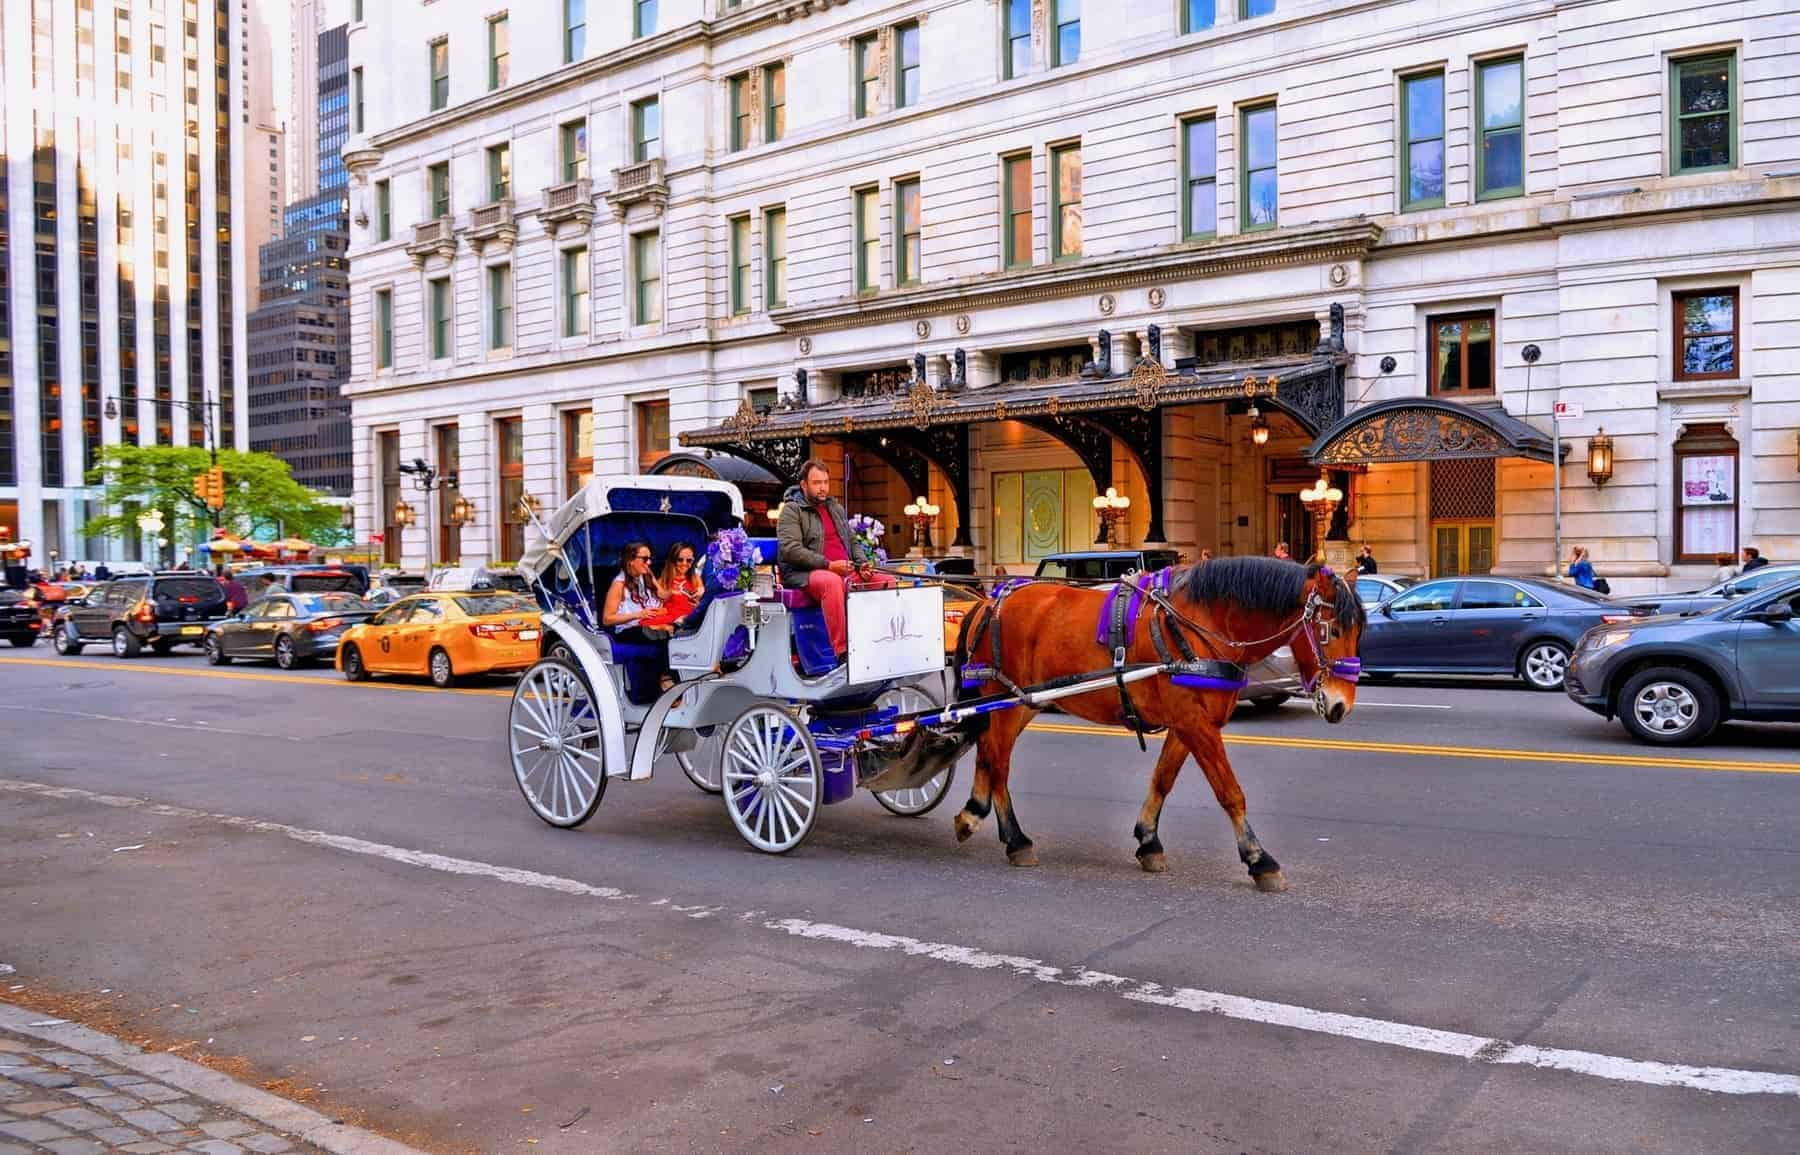 Horse carriage at the Central park in front Plaza Hotel in New York, the most picturesque and romantic ways to see the Central Park. Manhattan